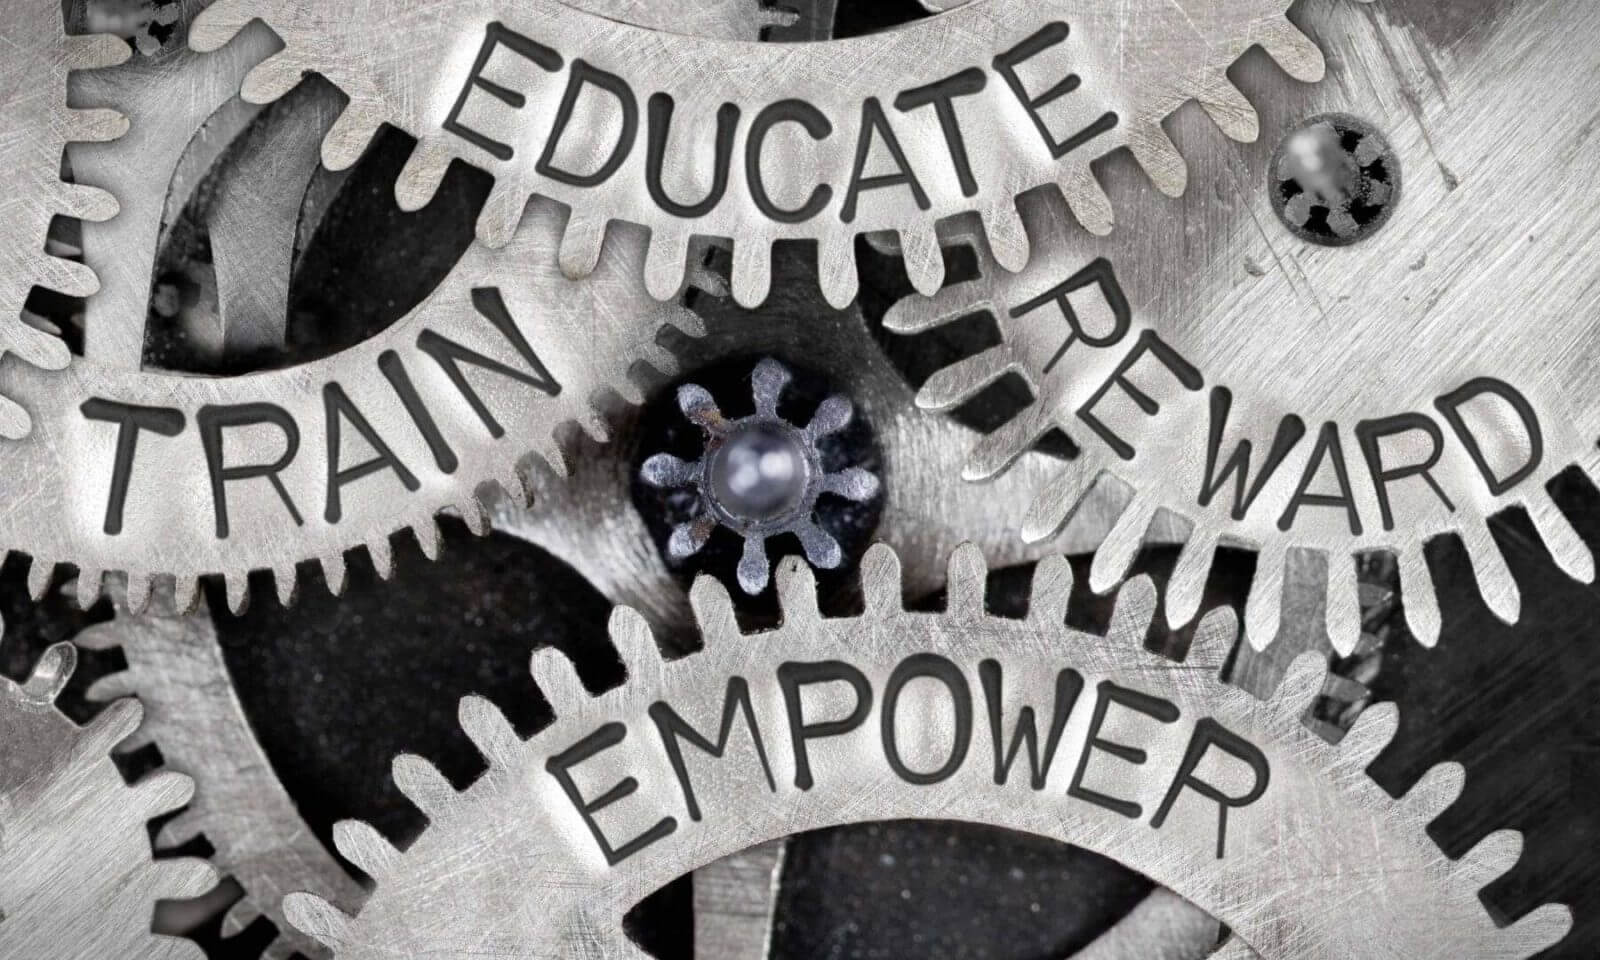 Empowered to change the world